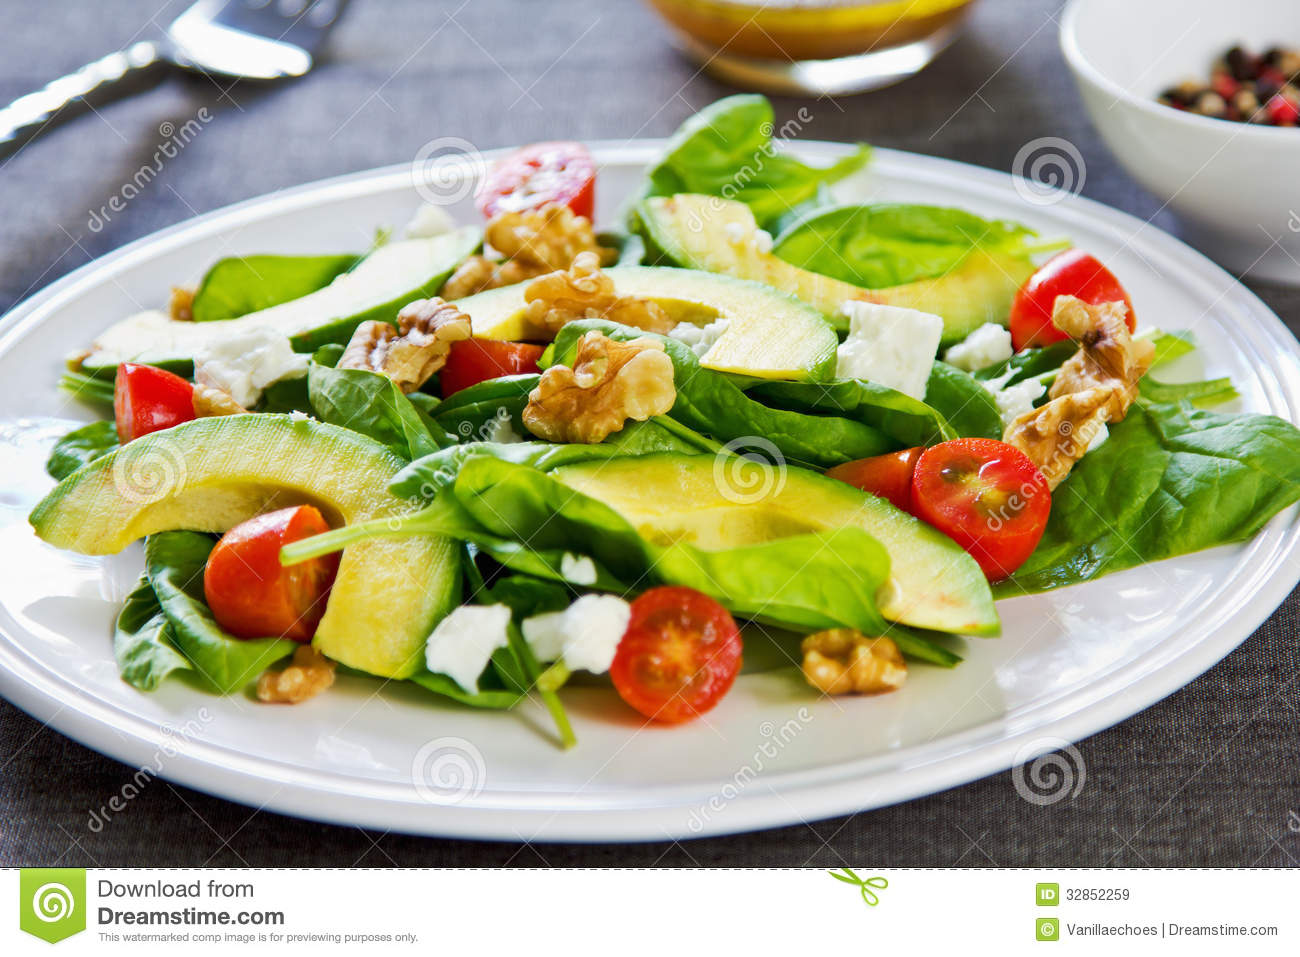 avocado with spinach and feta salad stock image image 32852259. Black Bedroom Furniture Sets. Home Design Ideas